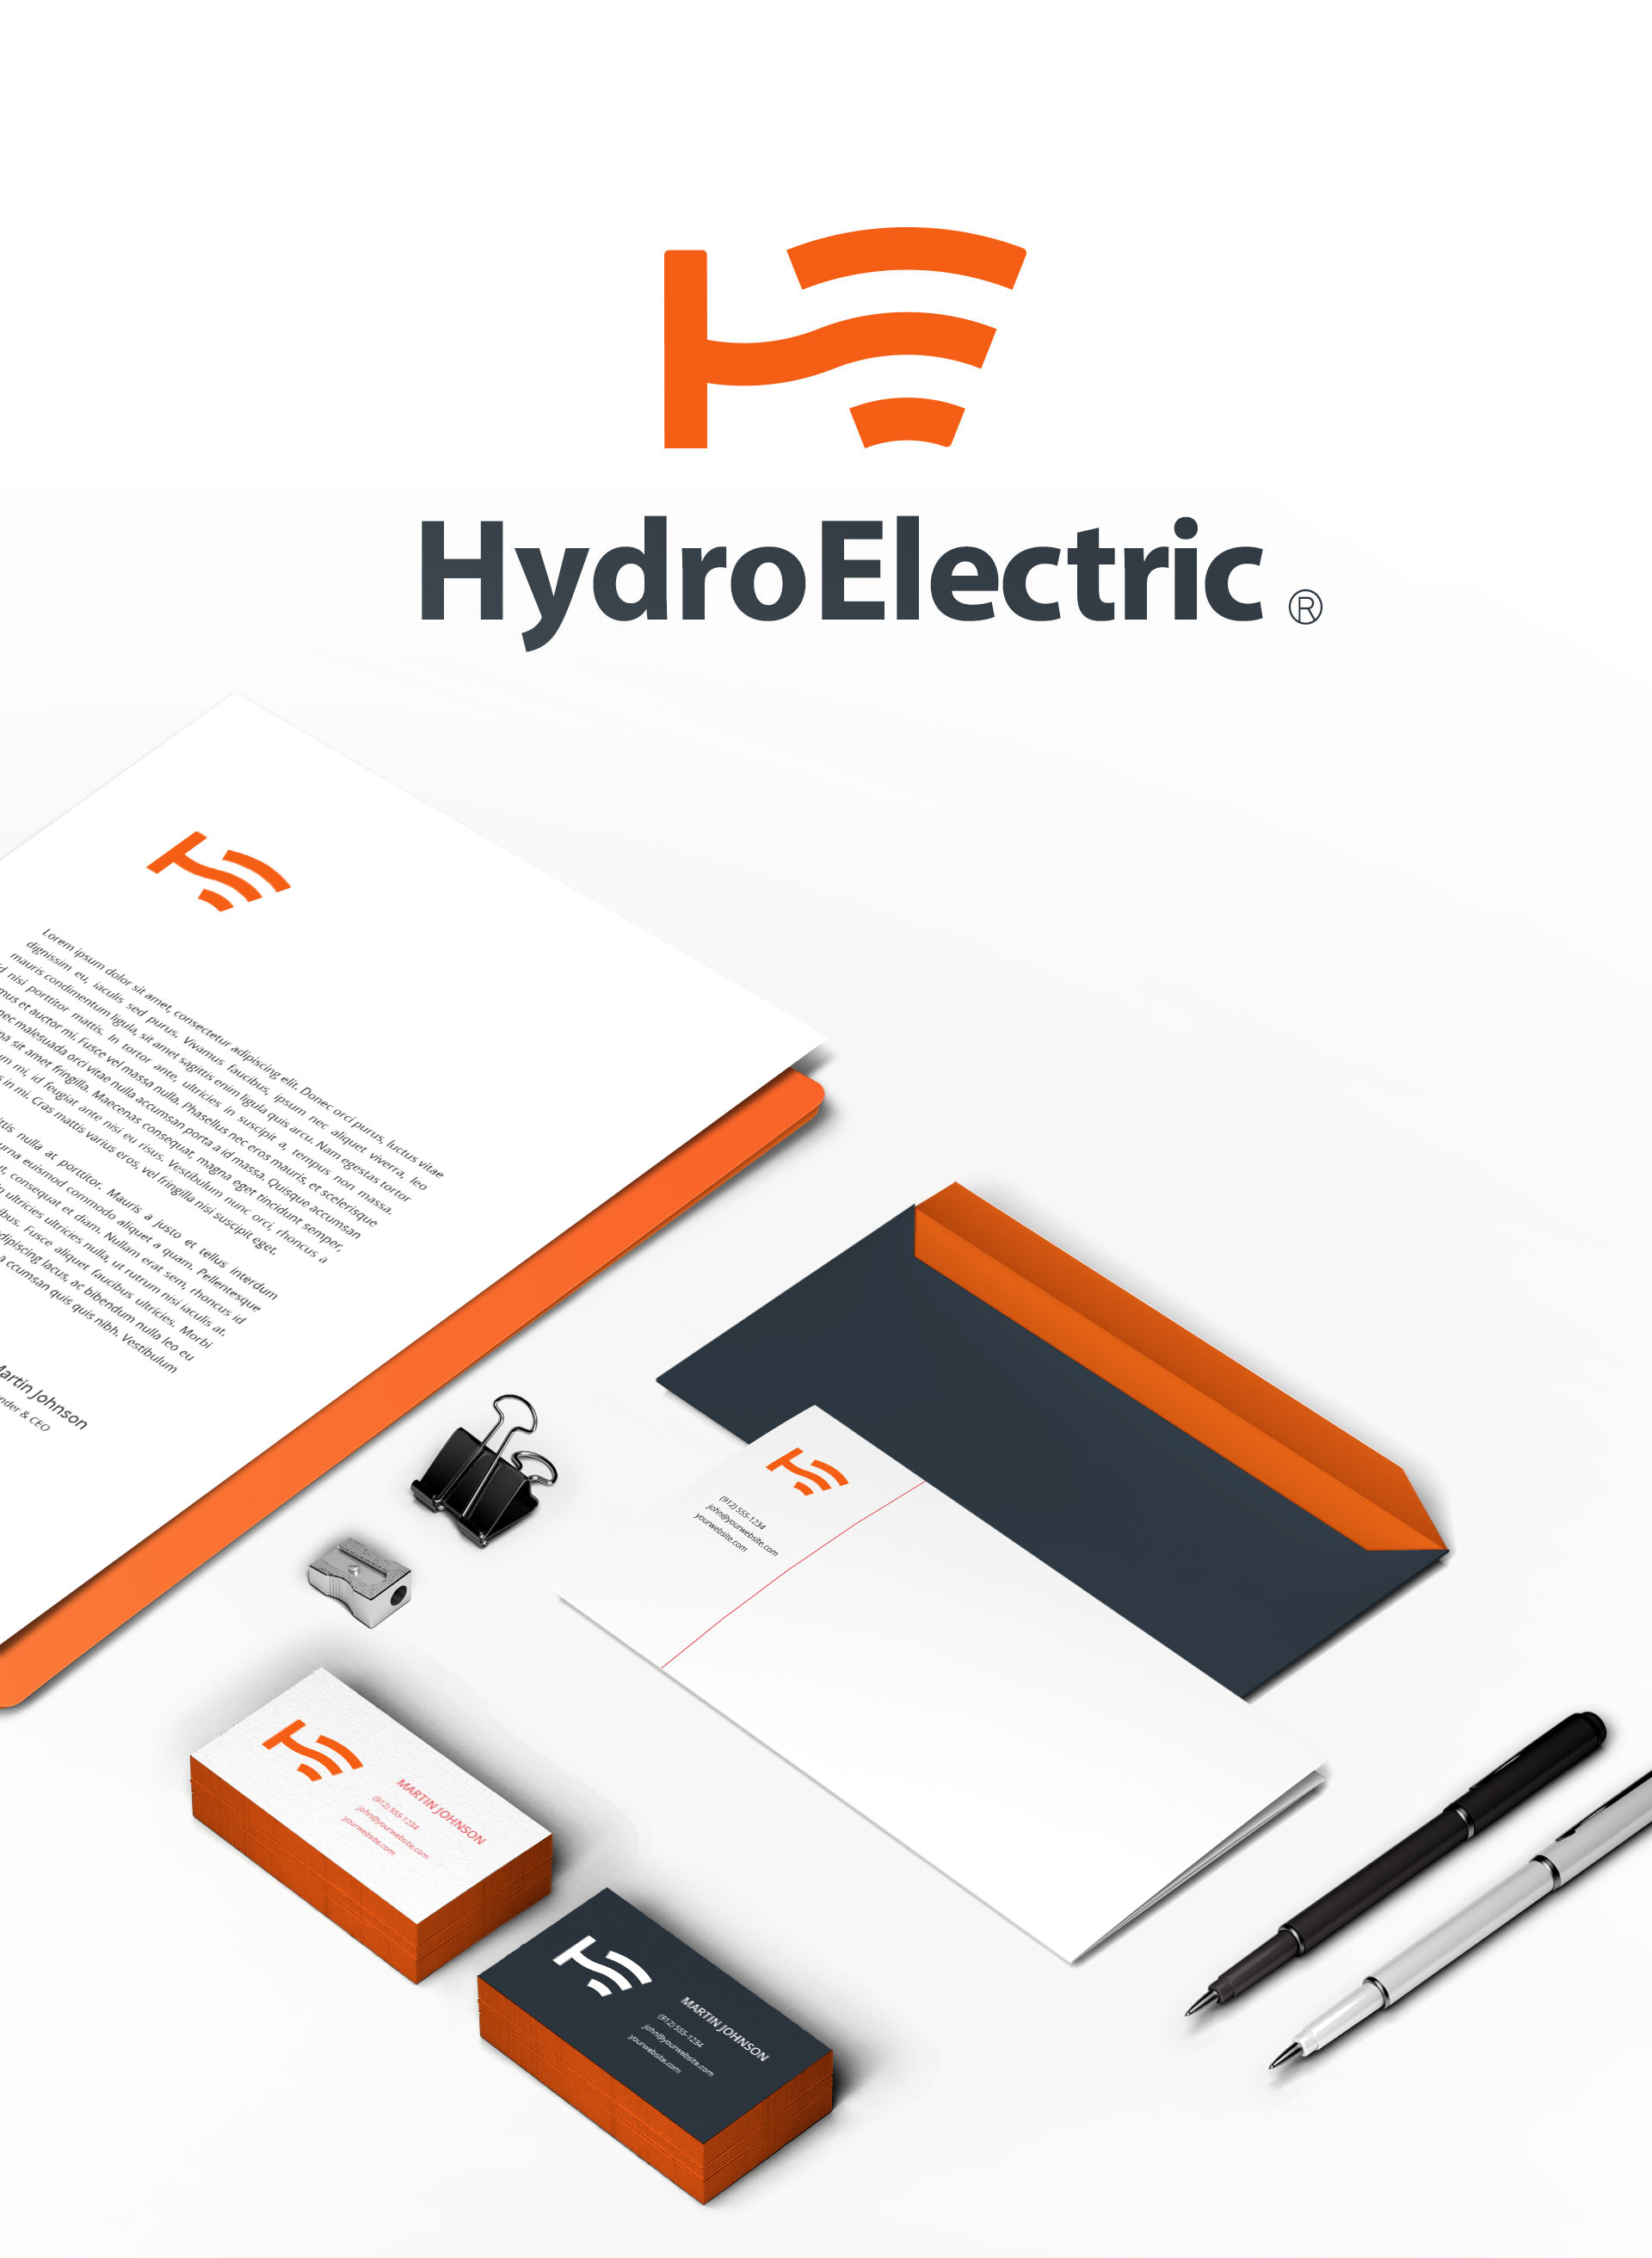 hydro electric stationery